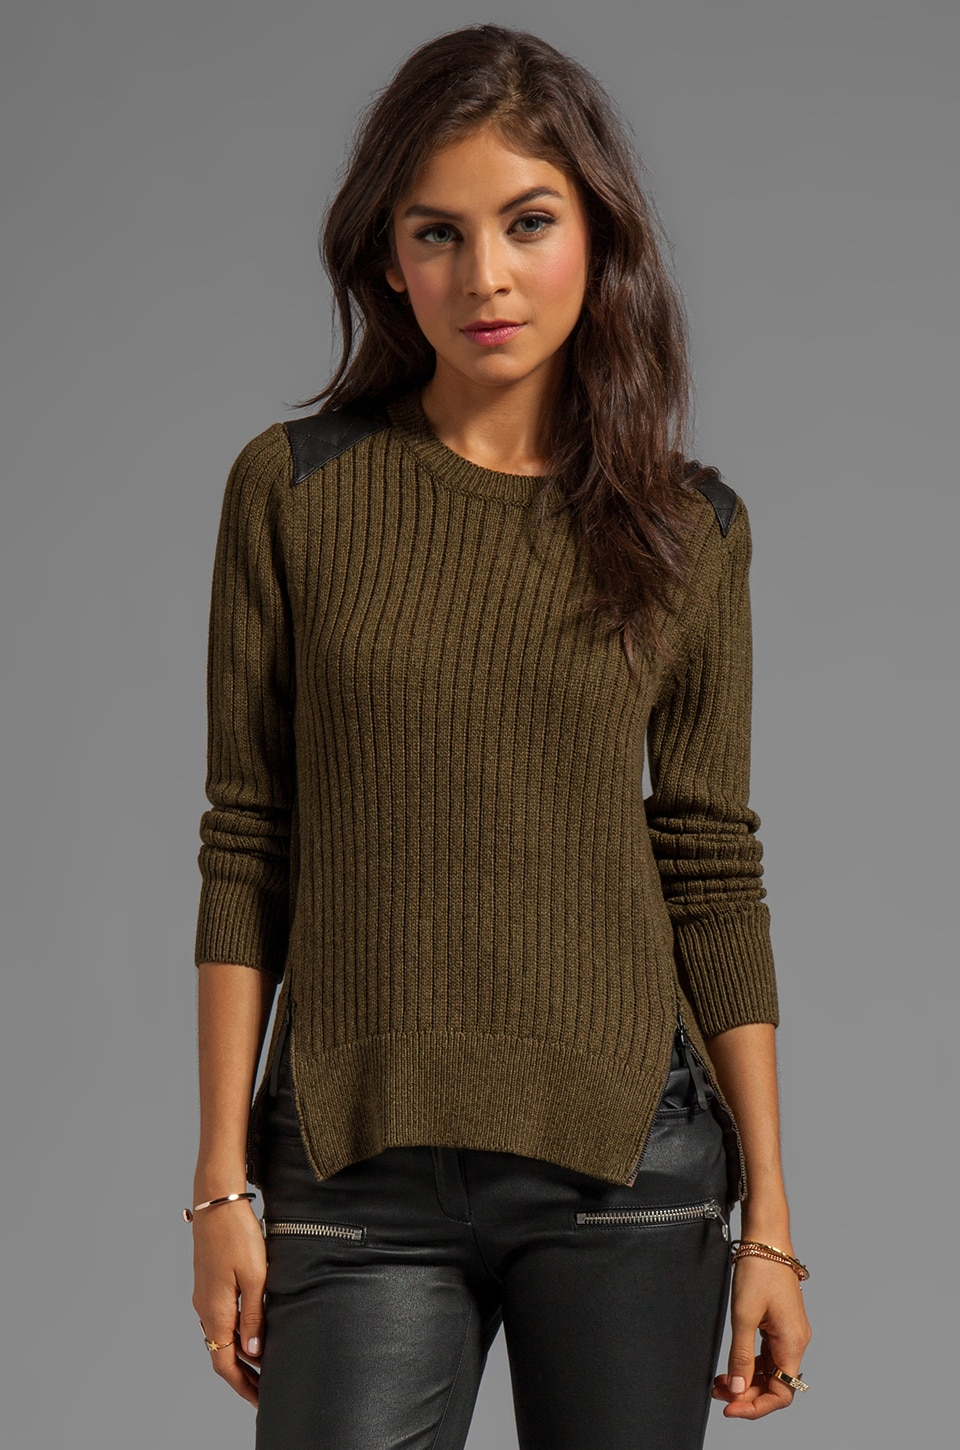 Dolce Vita Joe Military Knit in Army Green